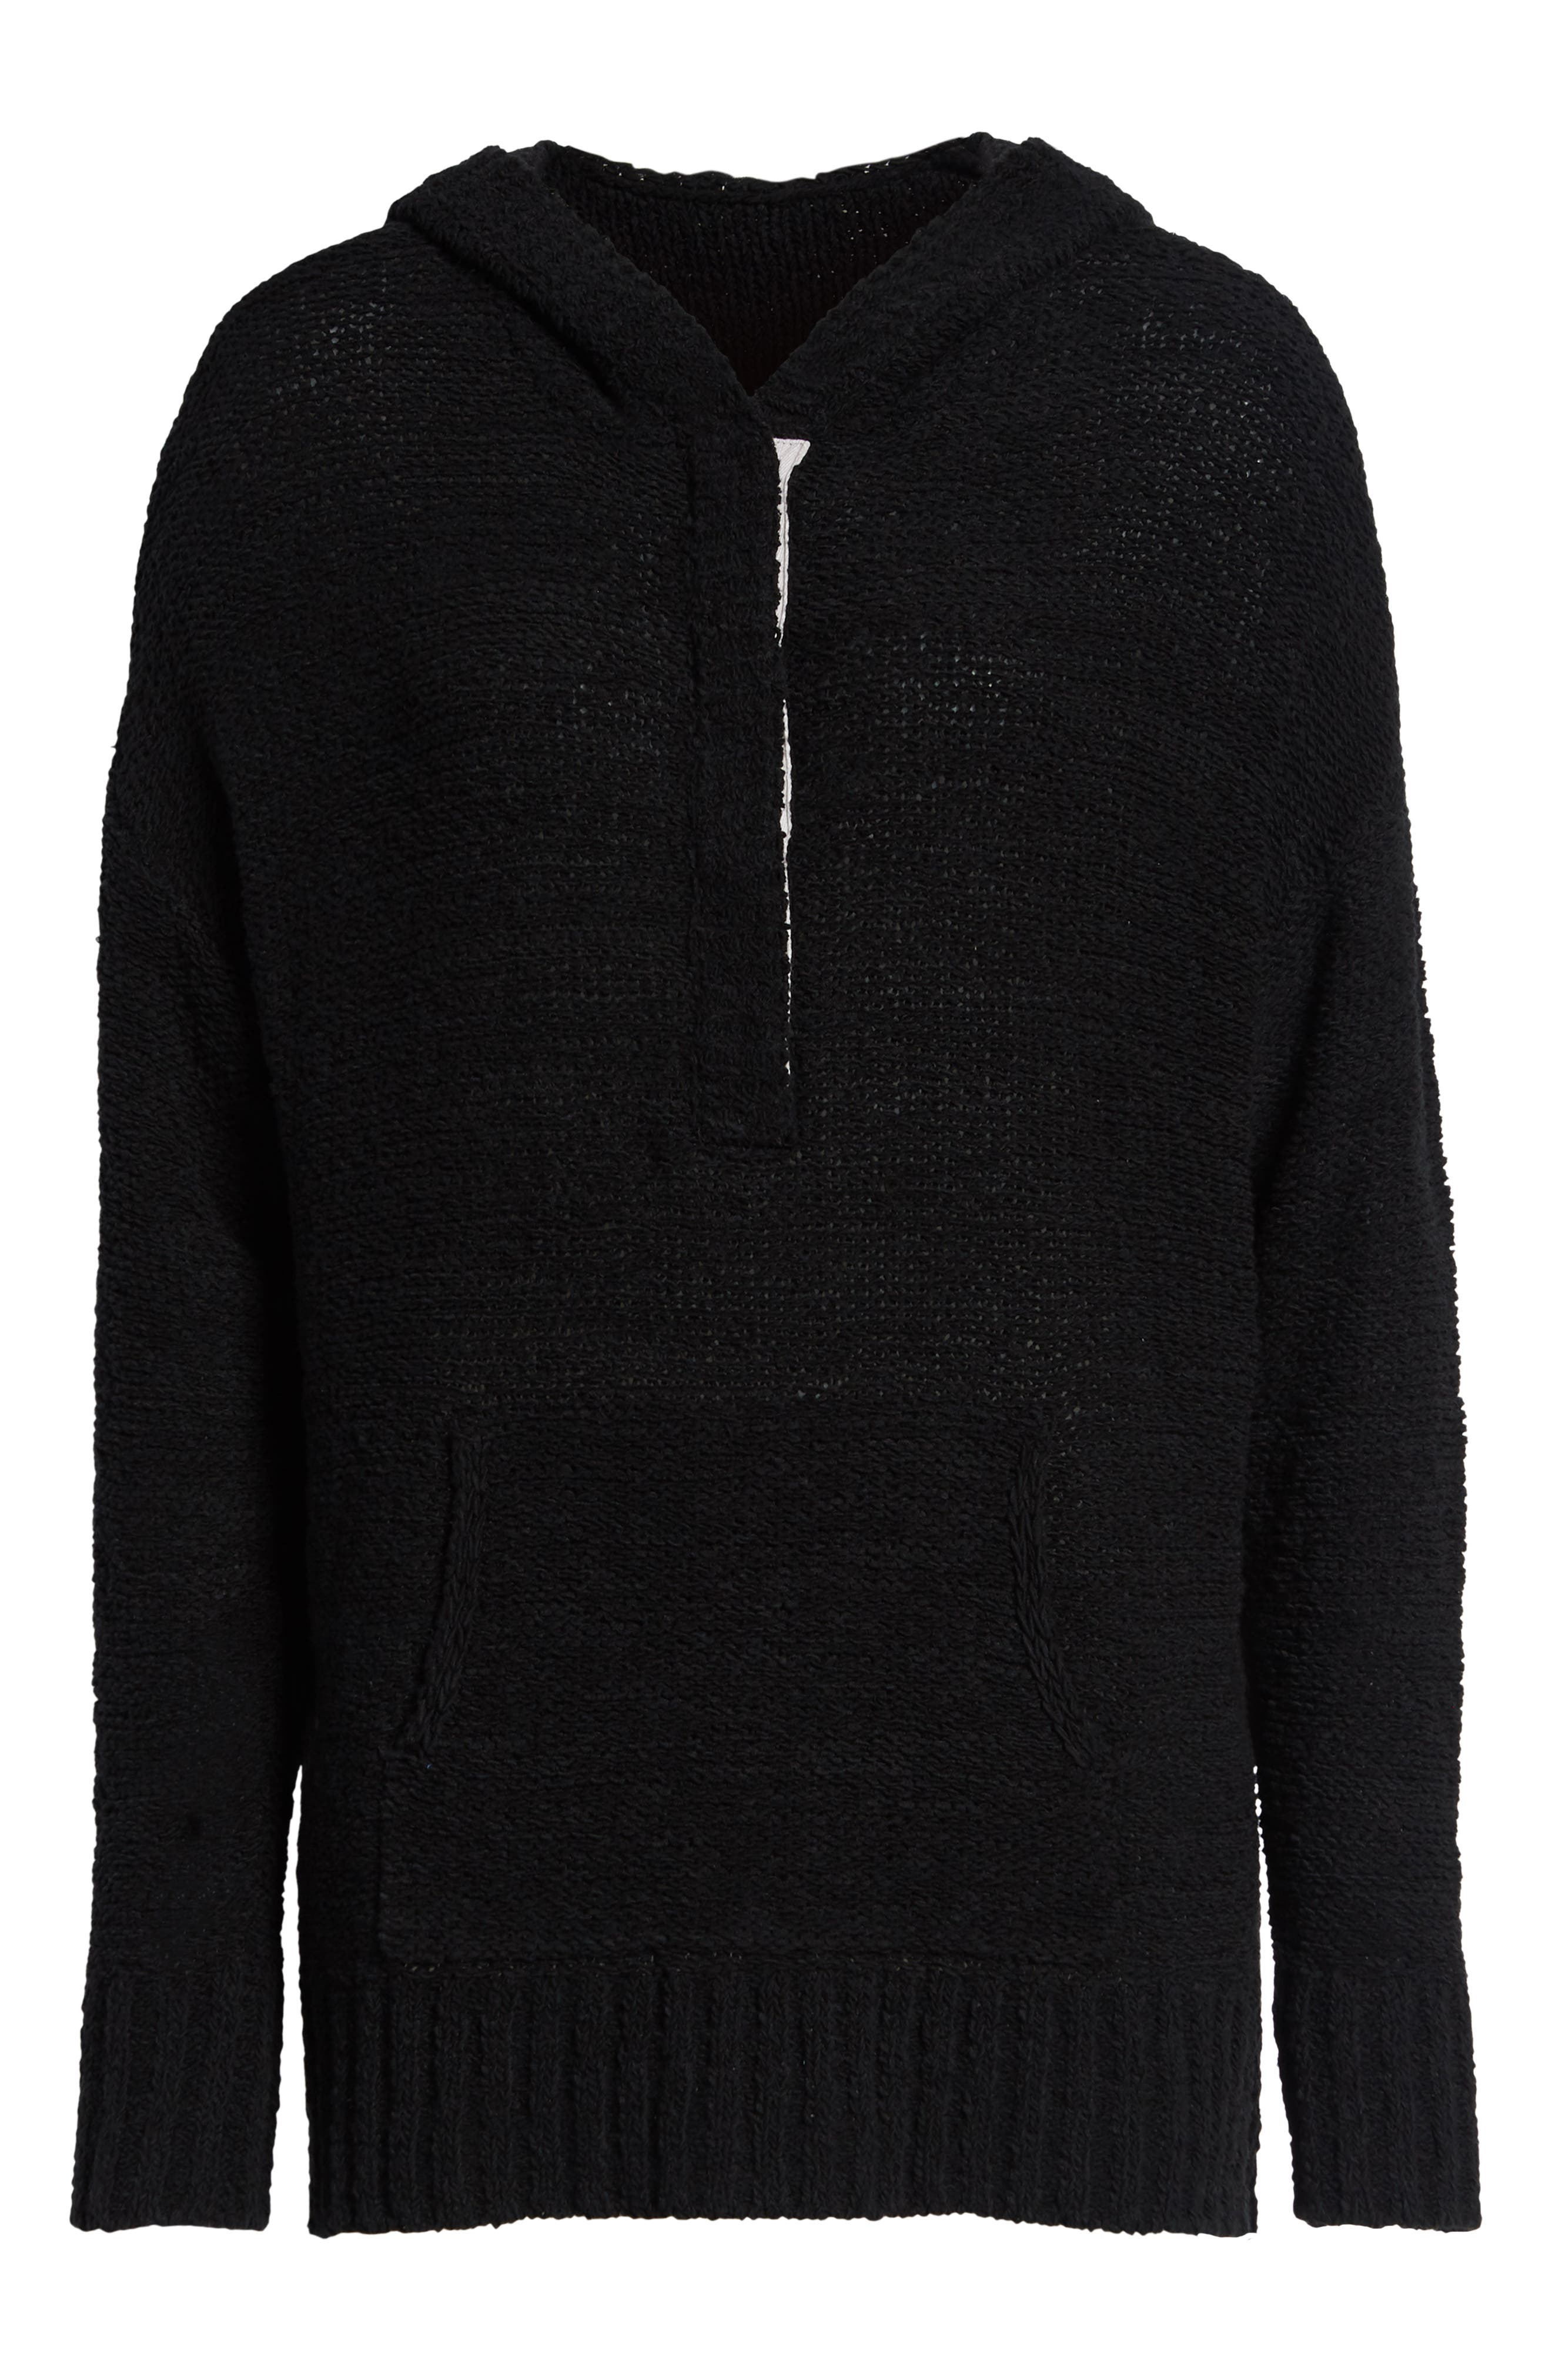 CASLON<SUP>®</SUP>, Beachy Hooded Knit Sweater, Alternate thumbnail 6, color, 001